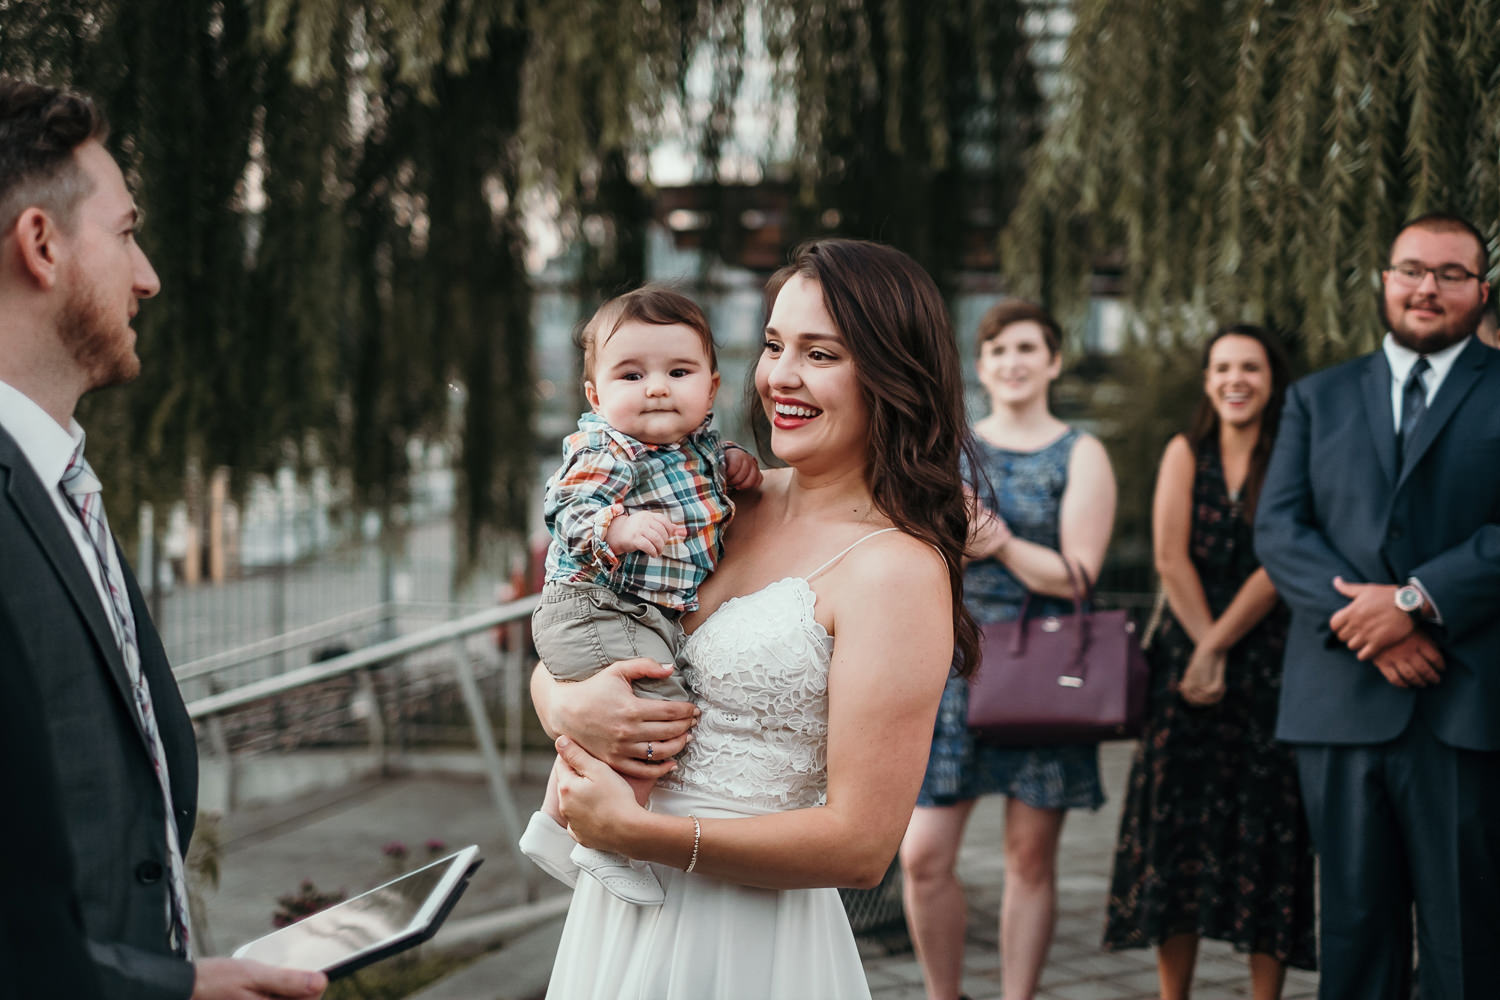 bride smiling holding baby at ceremony spot